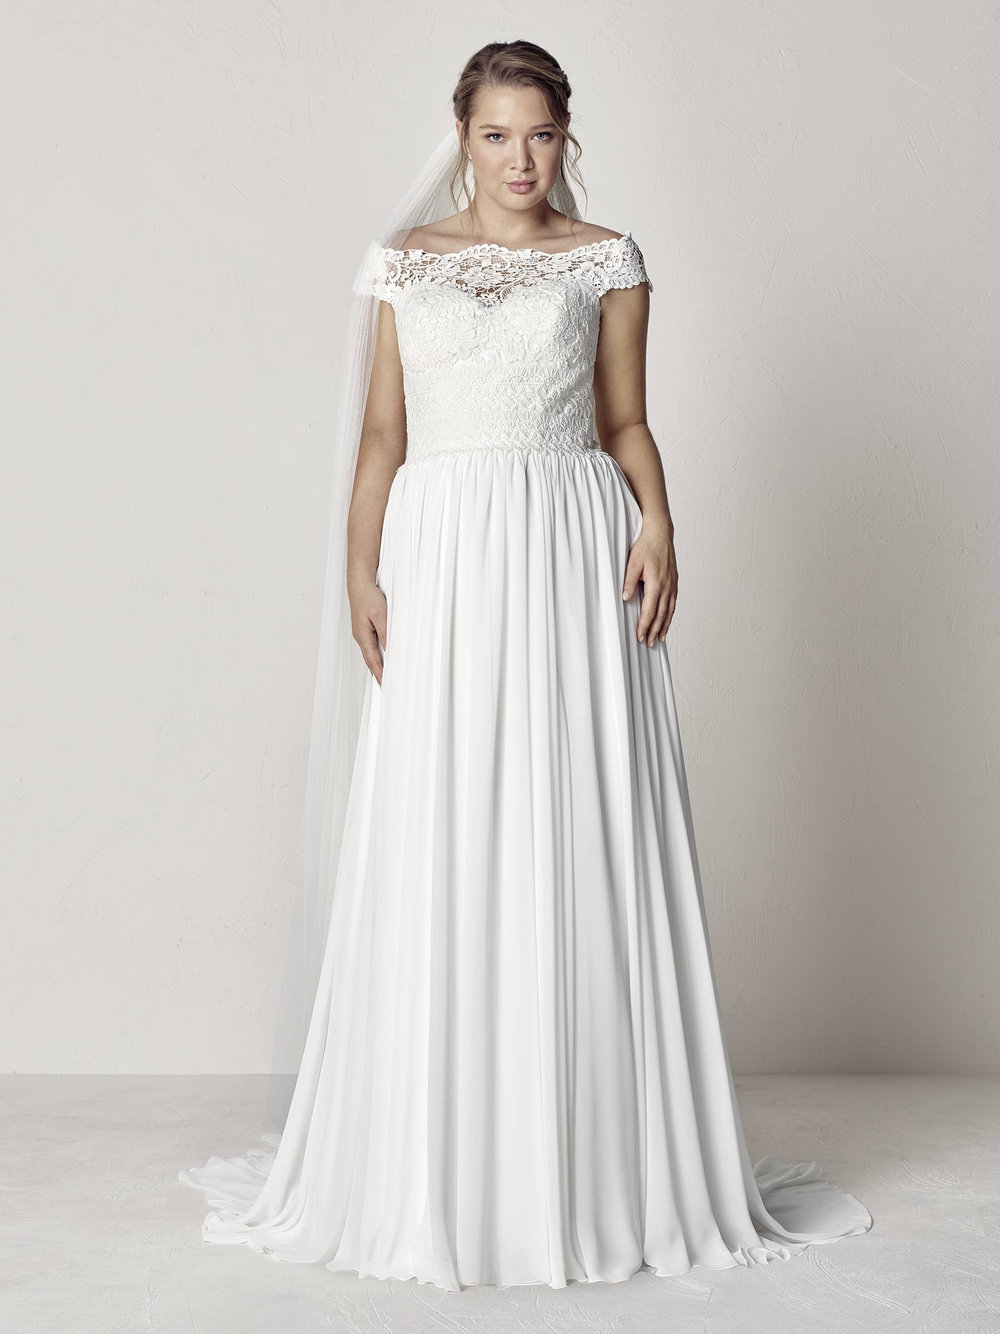 PronoviasBridal-BridesbyYoung-PlusSizeWeddingDress-Evita.jpg